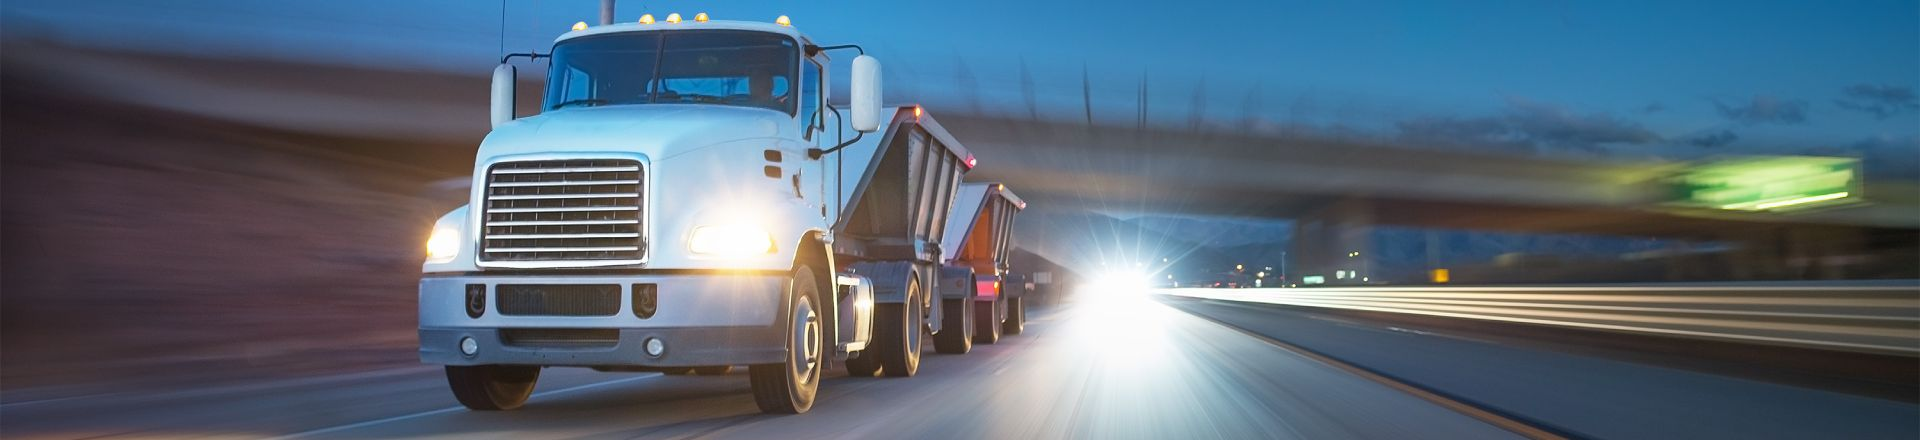 American Style Truck On The Road. Tampa Truck Accidents Injury Lawyer